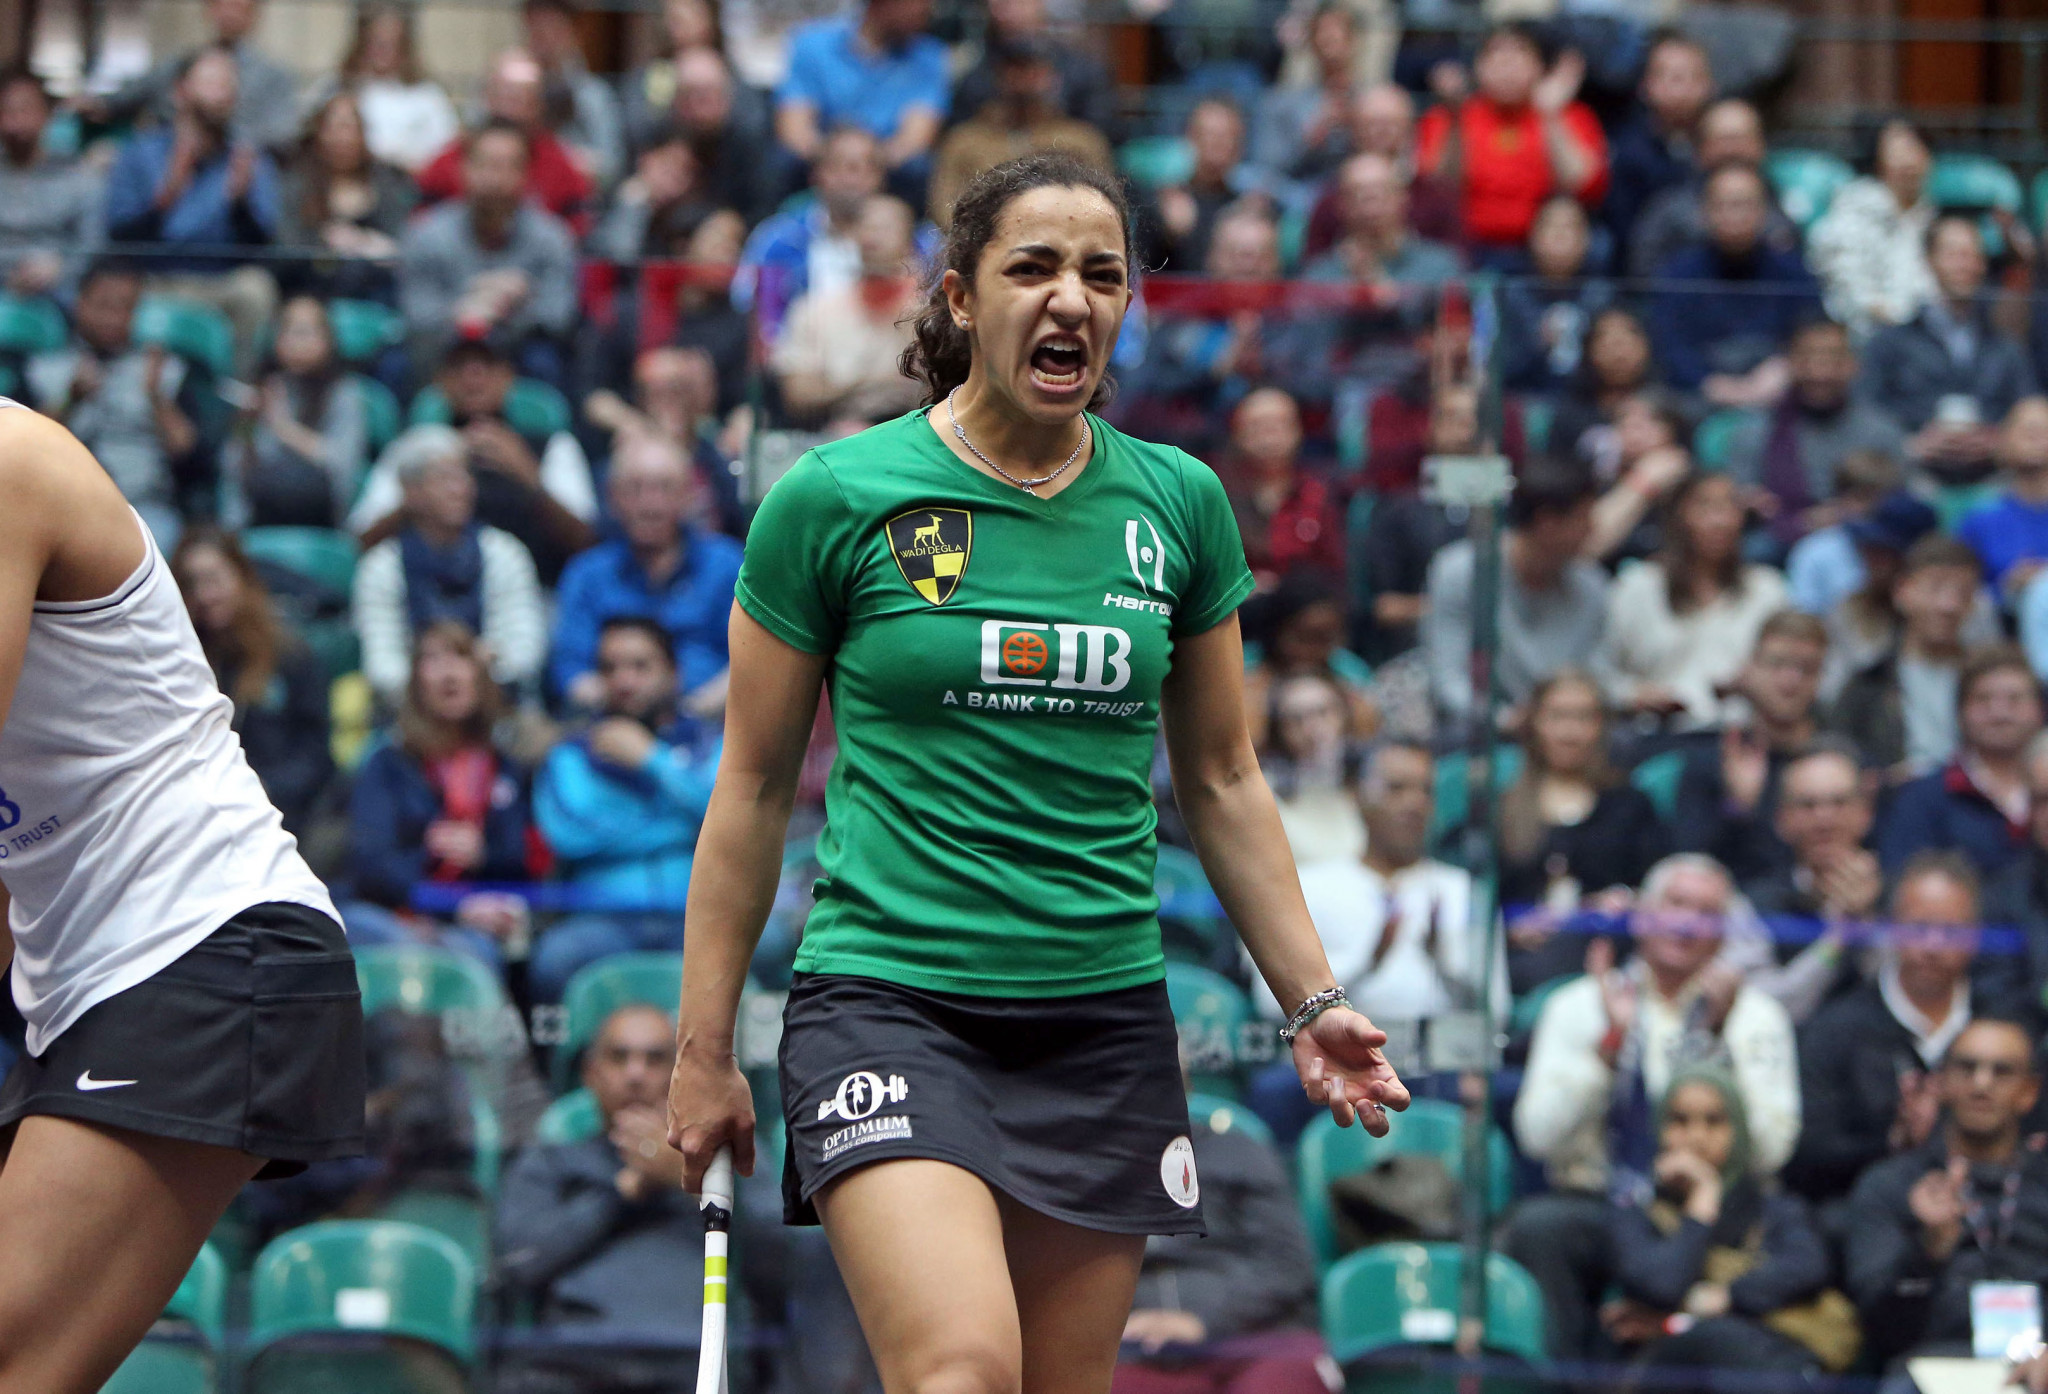 El Welily and Farag maintain world number one spots on PSA rankings